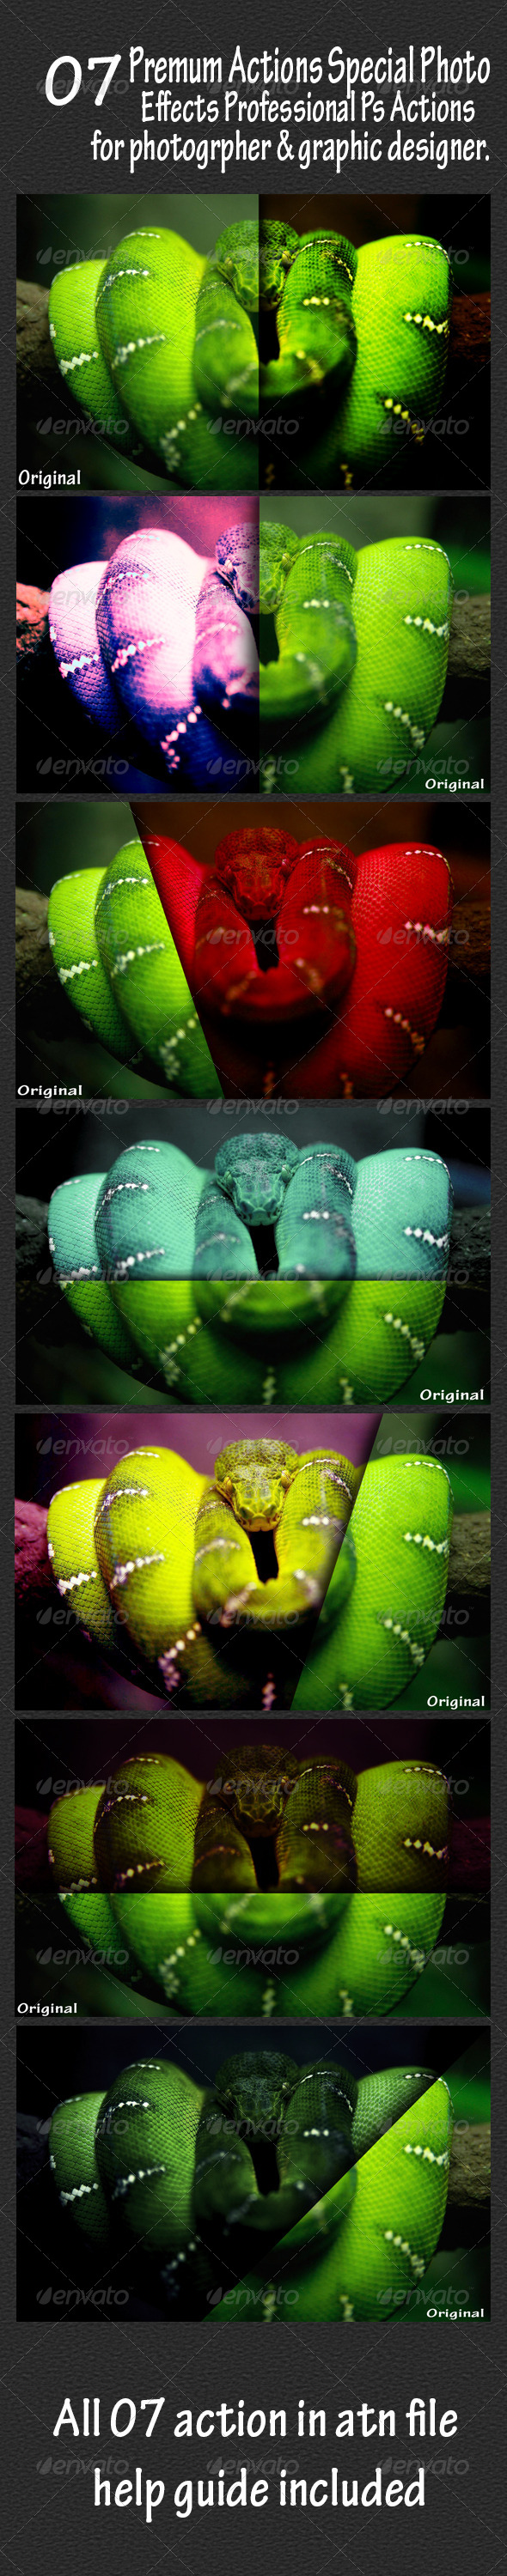 GraphicRiver 07 Premum Animal Actions Special Photo Effects Pr 6403481